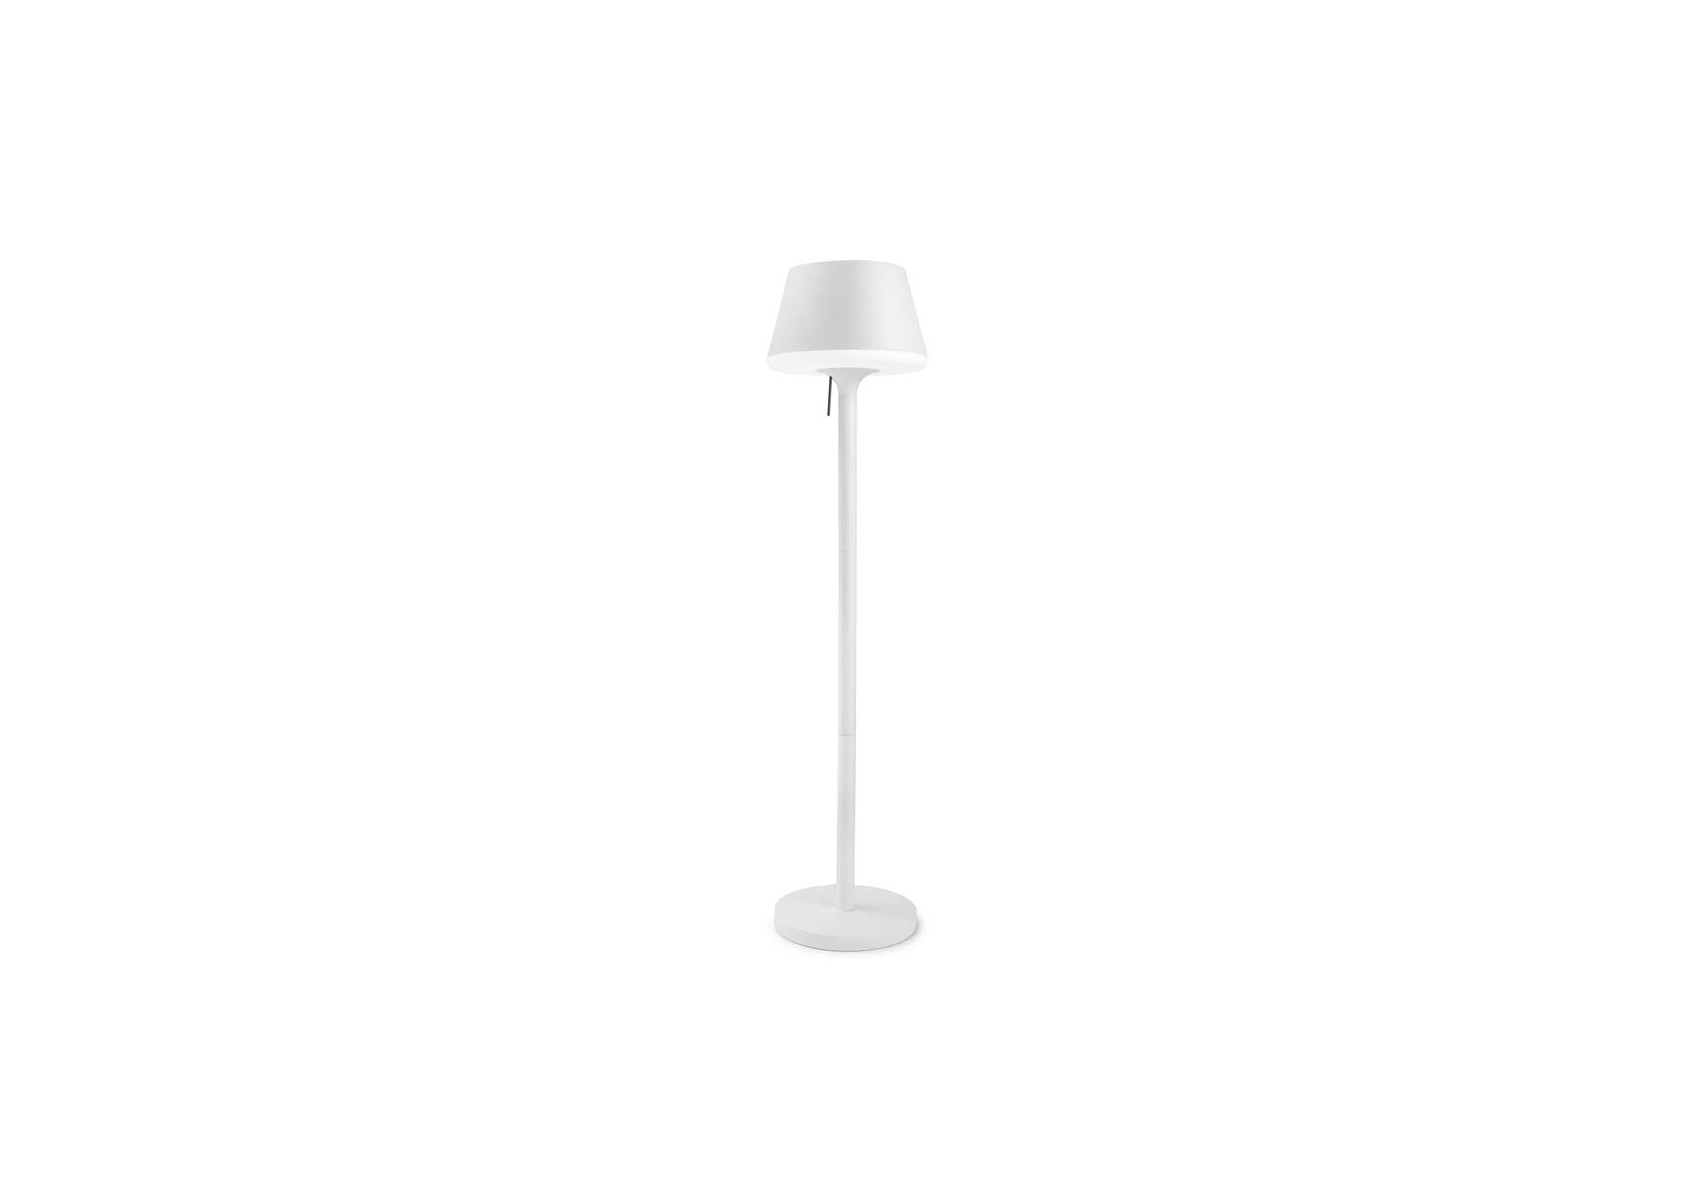 lampadaire d 39 ext rieur moonlight disponible en blanc ou. Black Bedroom Furniture Sets. Home Design Ideas